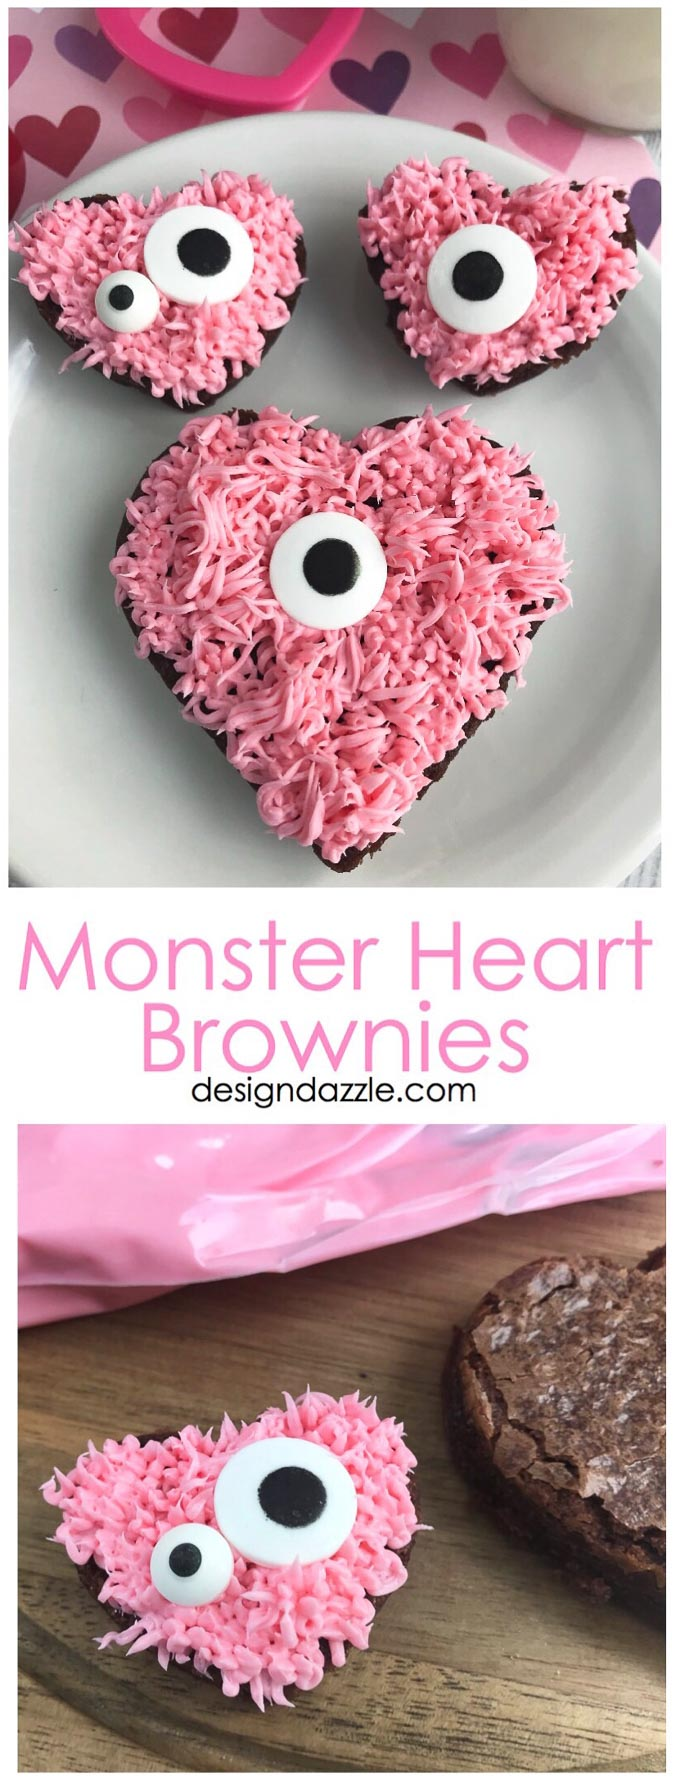 Monster Heart Brownies